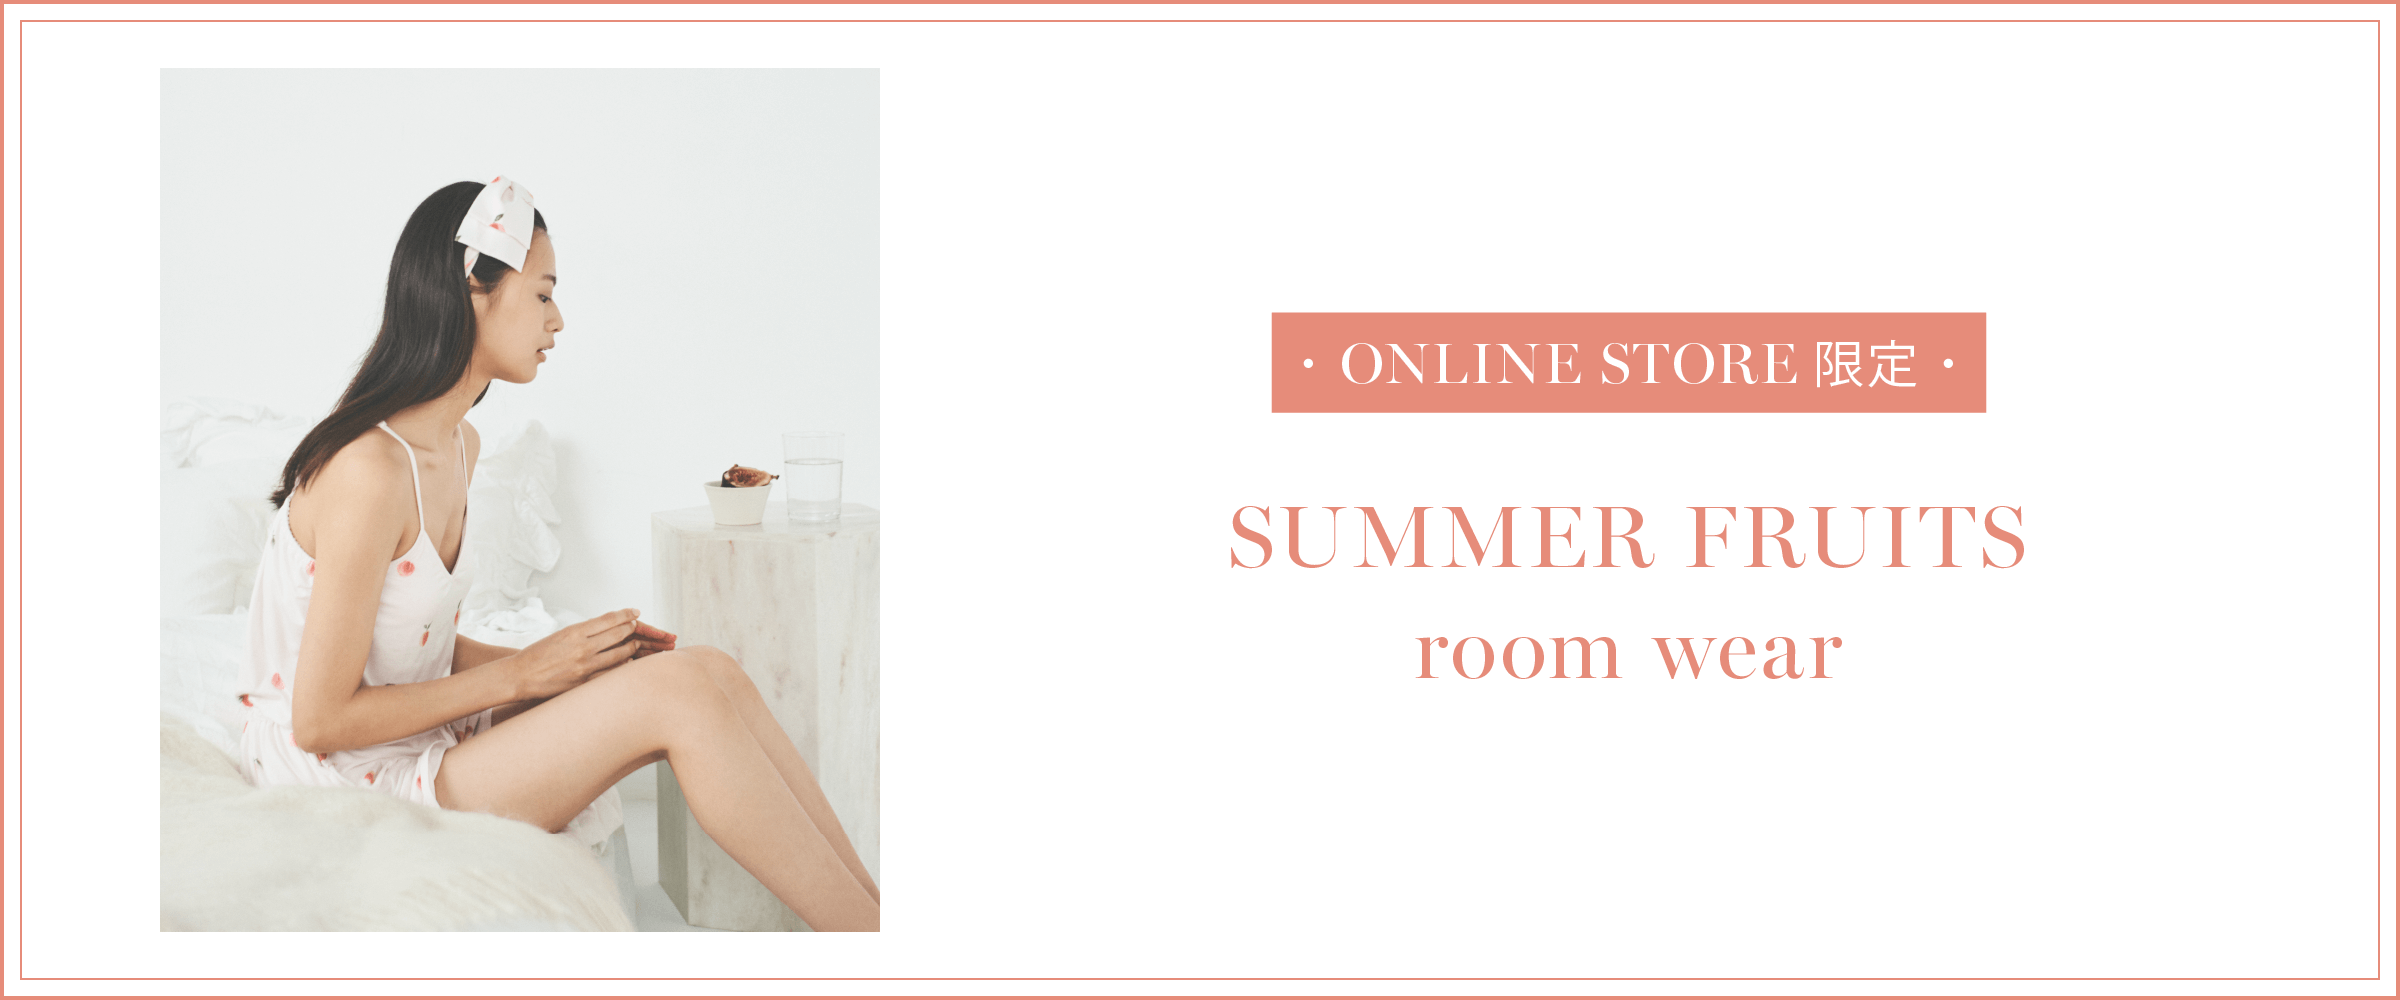 ONLINE STORE限定 summer fruits room wear